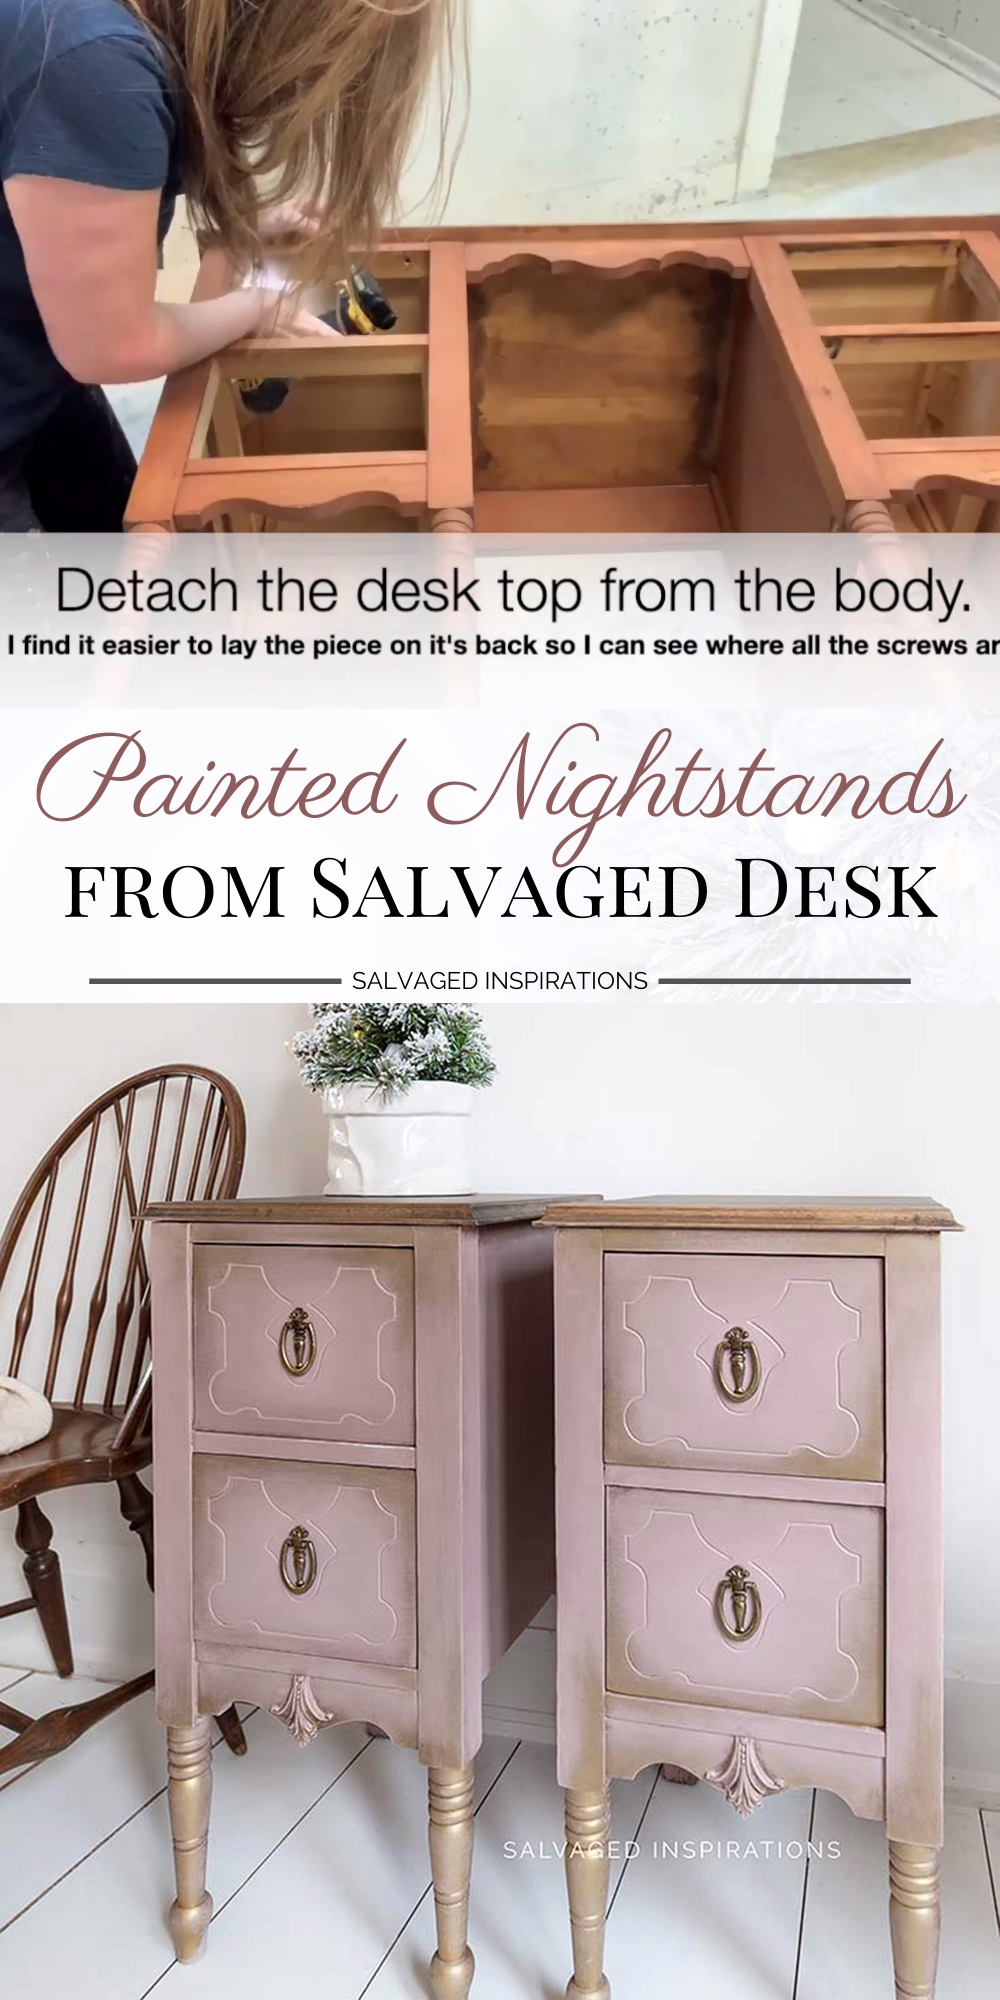 Photo of PAINTED NIGHTSTANDS FROM SALVAGED DESK